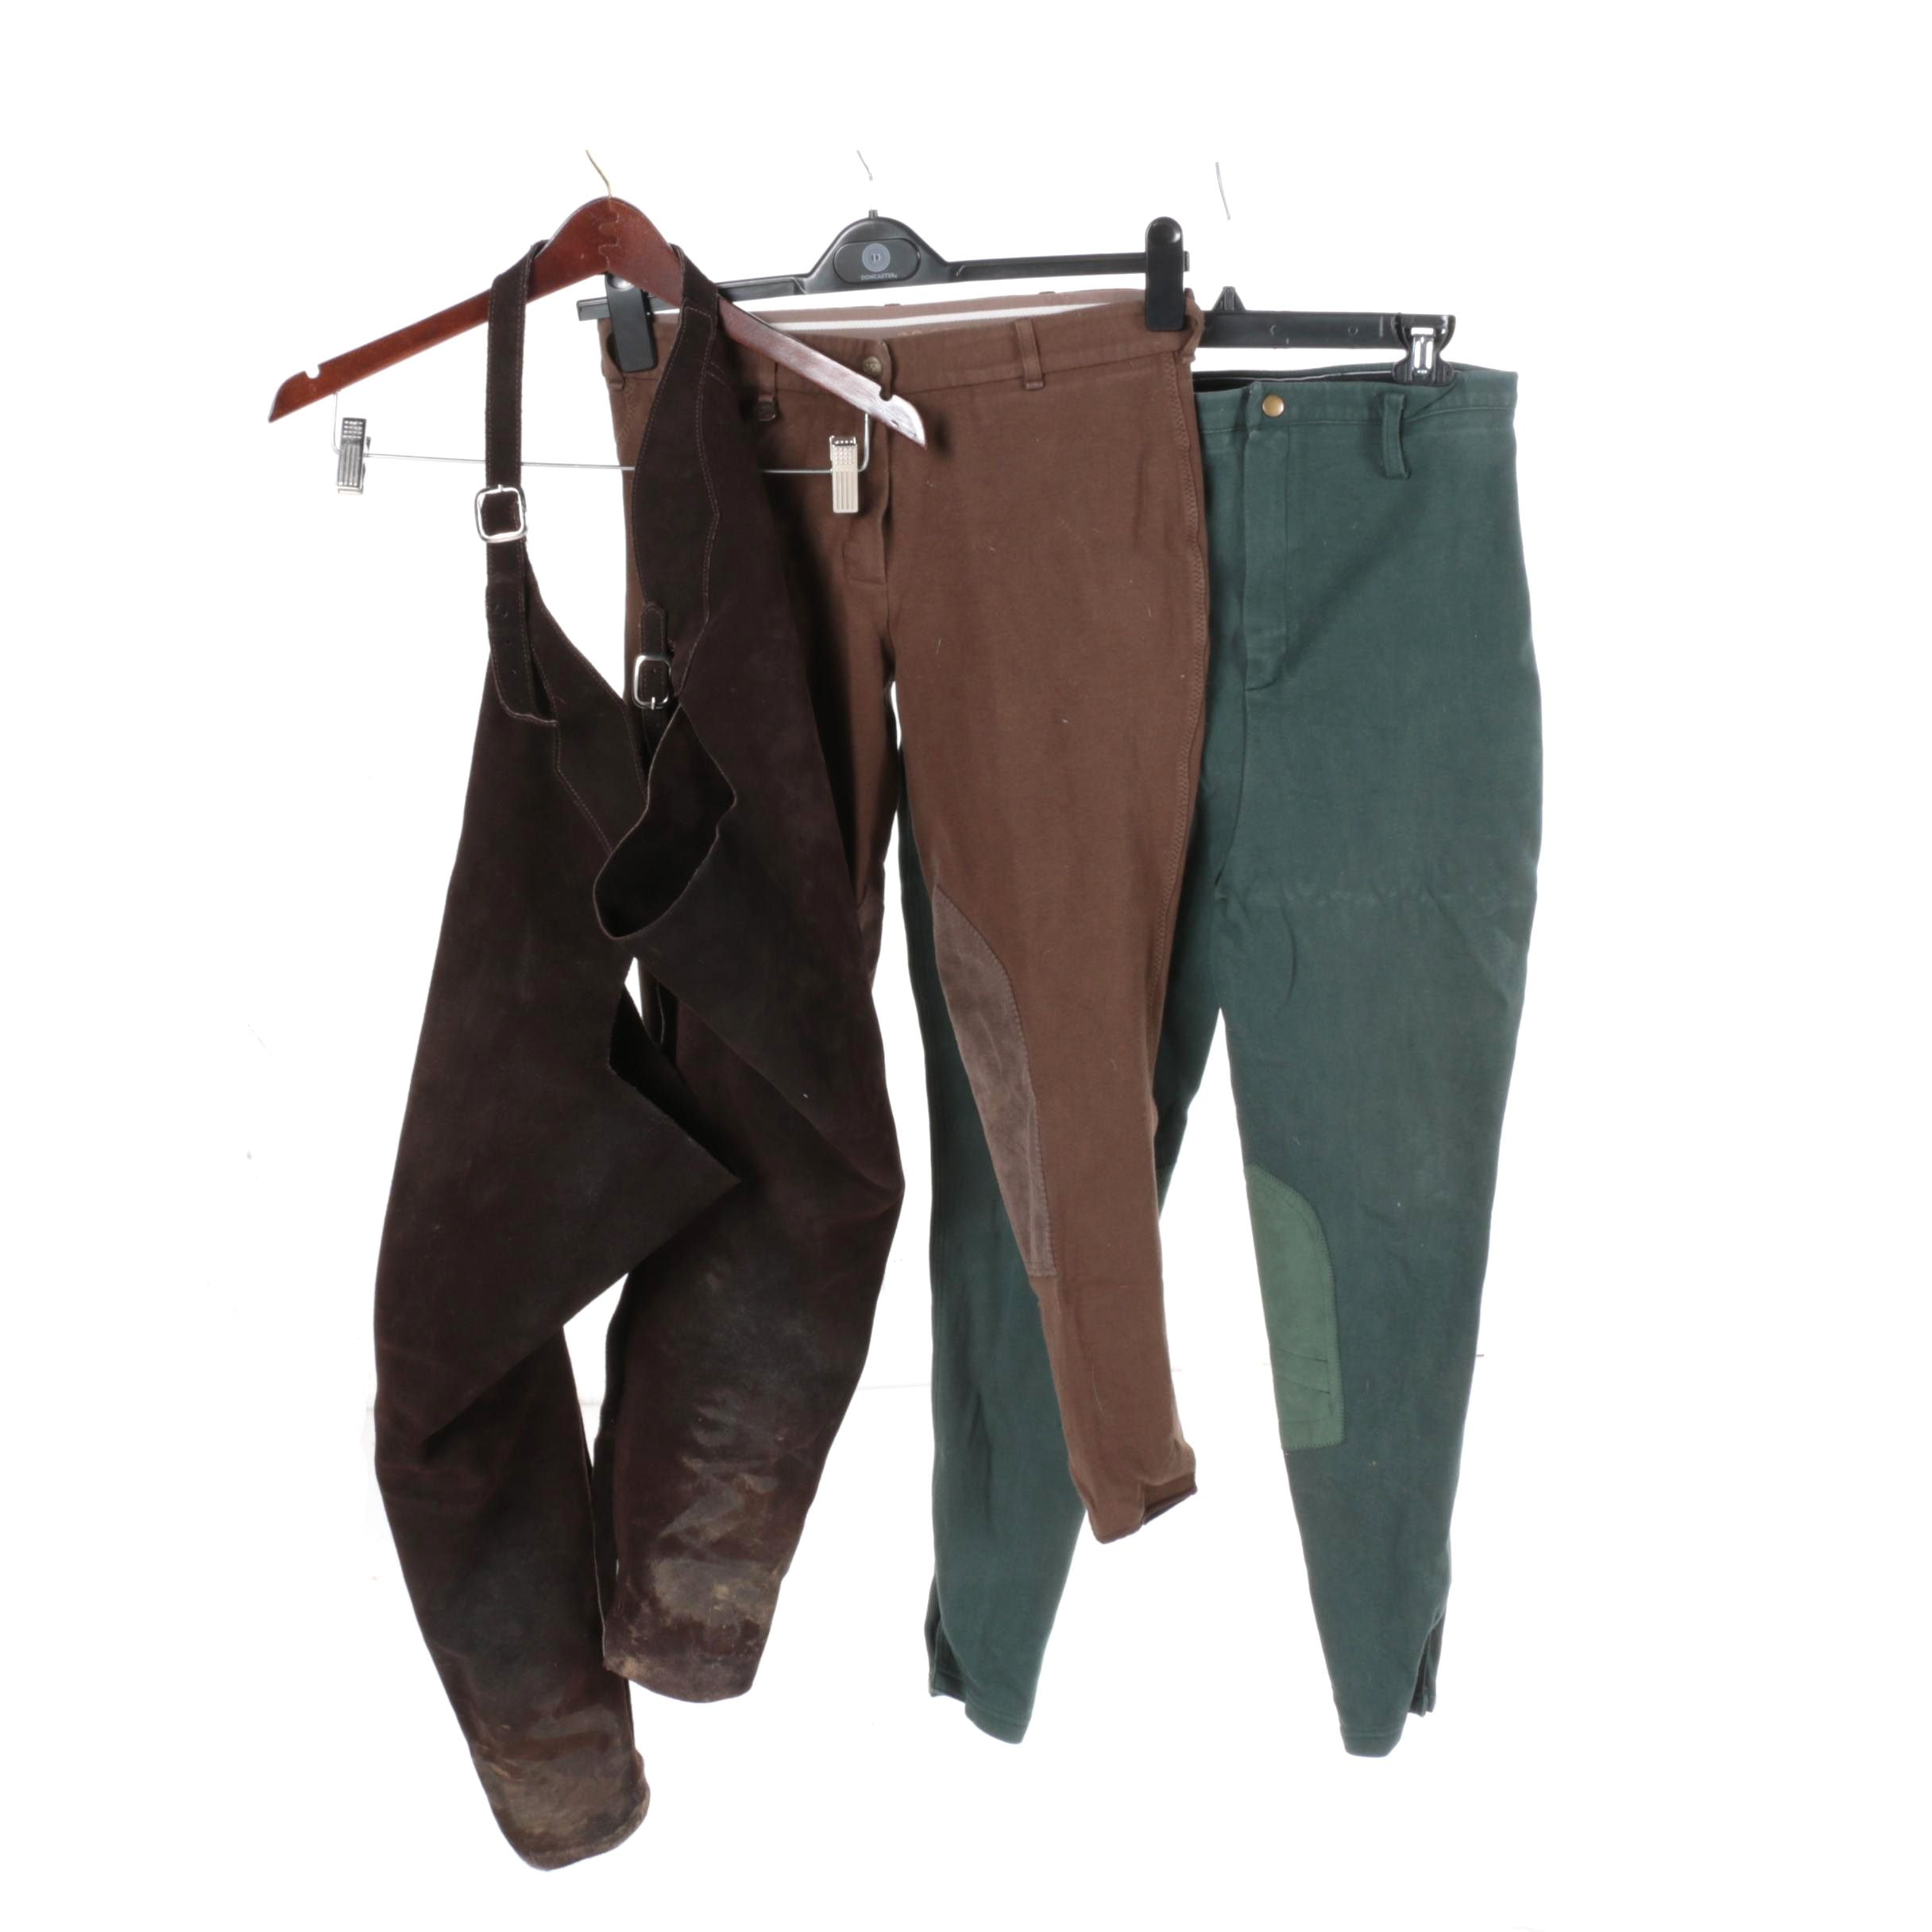 Women's Equestrian Riding Breeches and Chaps